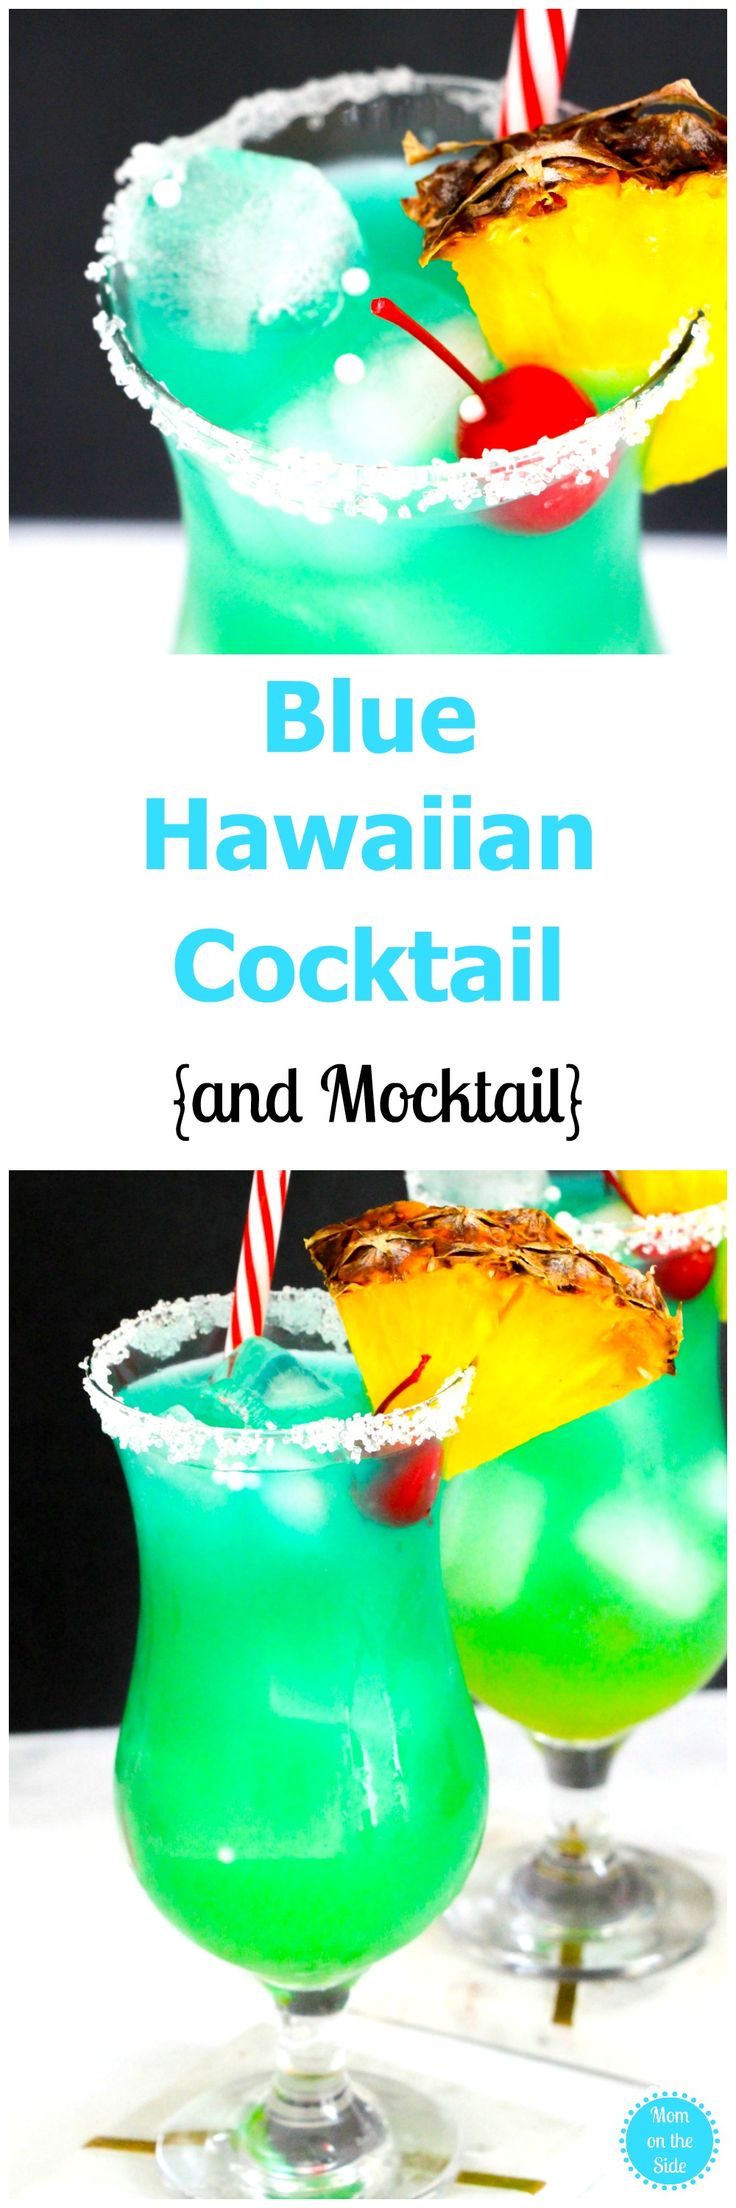 If you want a cocktail that makes you feel like you are on the beach, this Blue Hawaiian Cocktail is it! Plus, I've got a mocktail version as well! via @momontheside